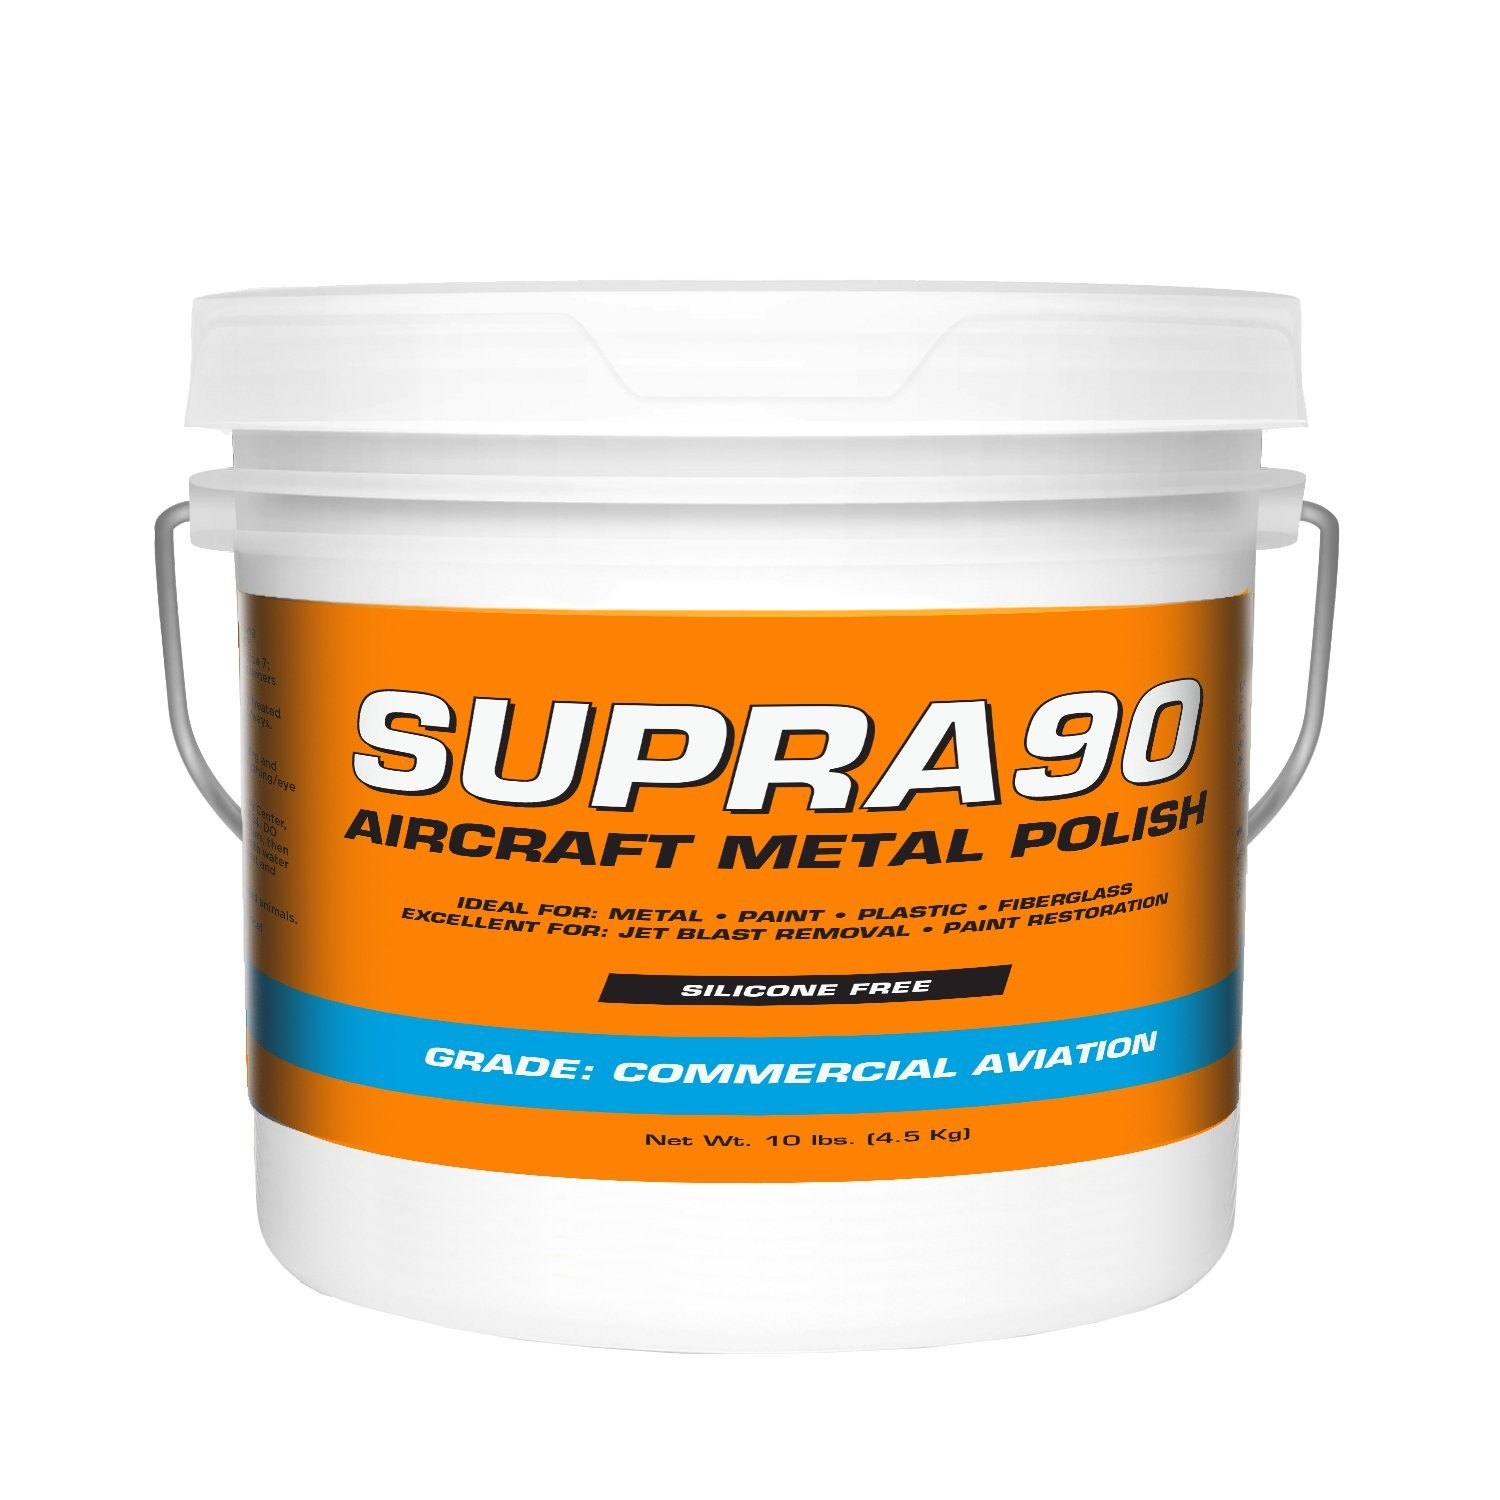 Supra90 Aircraft Metal Polish (10lb) for Airplane Painted Surfaces - Removes Jet Blast & Fuel Stains, Meets Boeing and Airbus Requirements